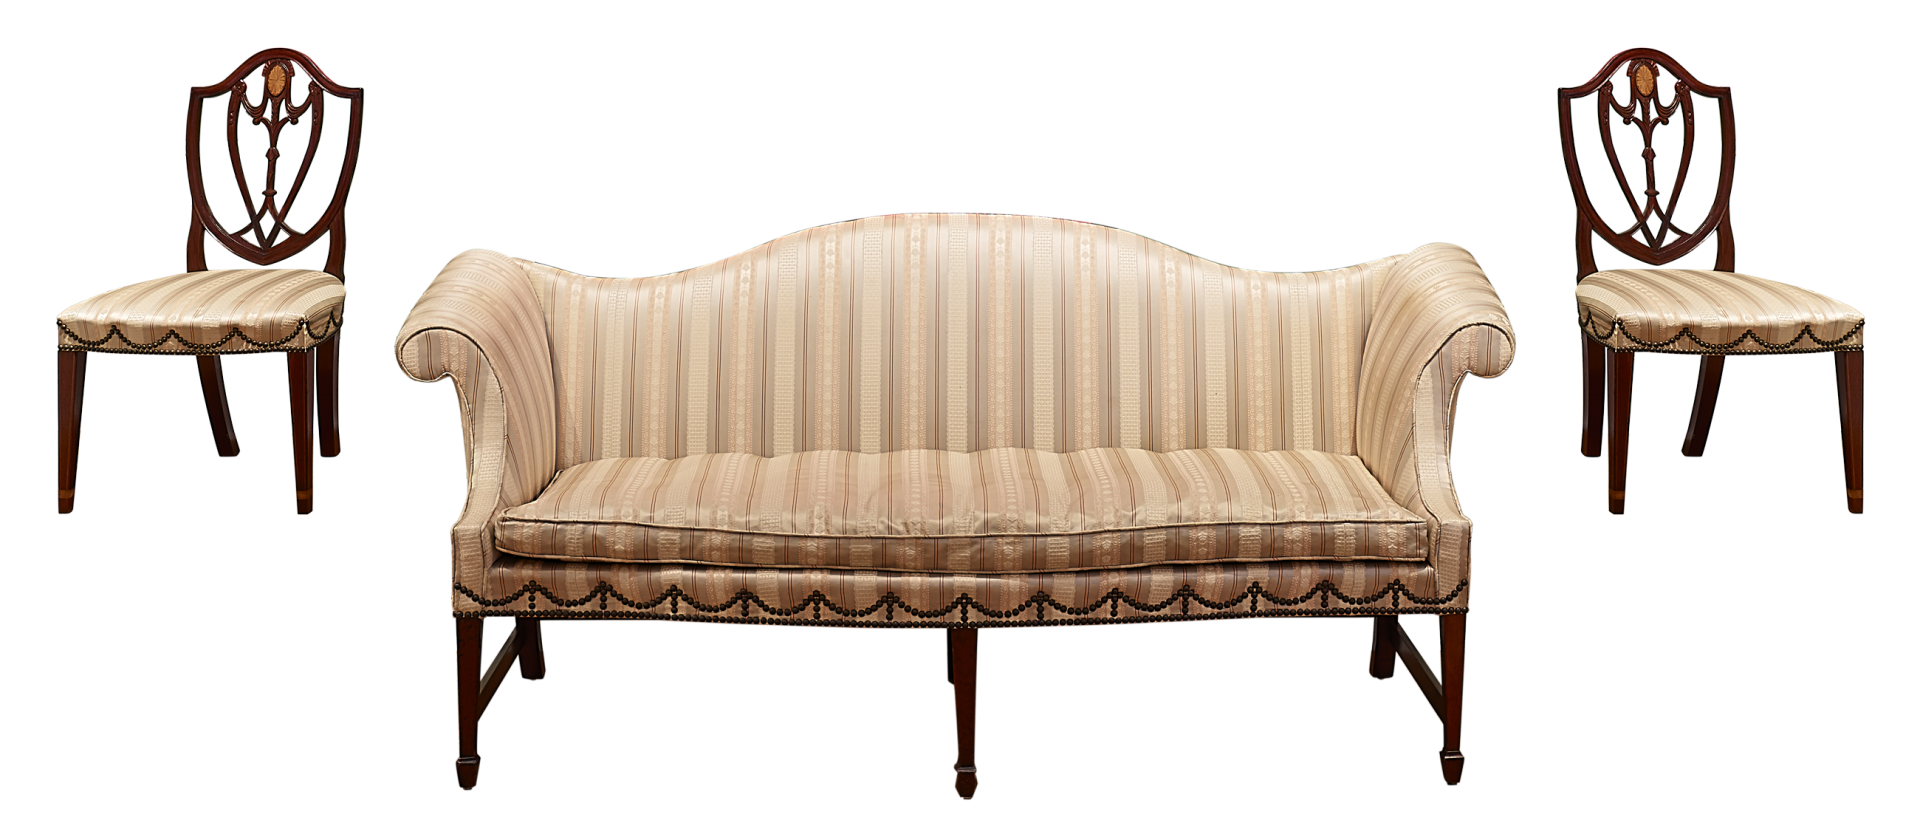 two wooden side chairs with cream upholstered seats, American, ca. 1800 flanking a couch upholstered with the same fabric, also American, ca. 1800